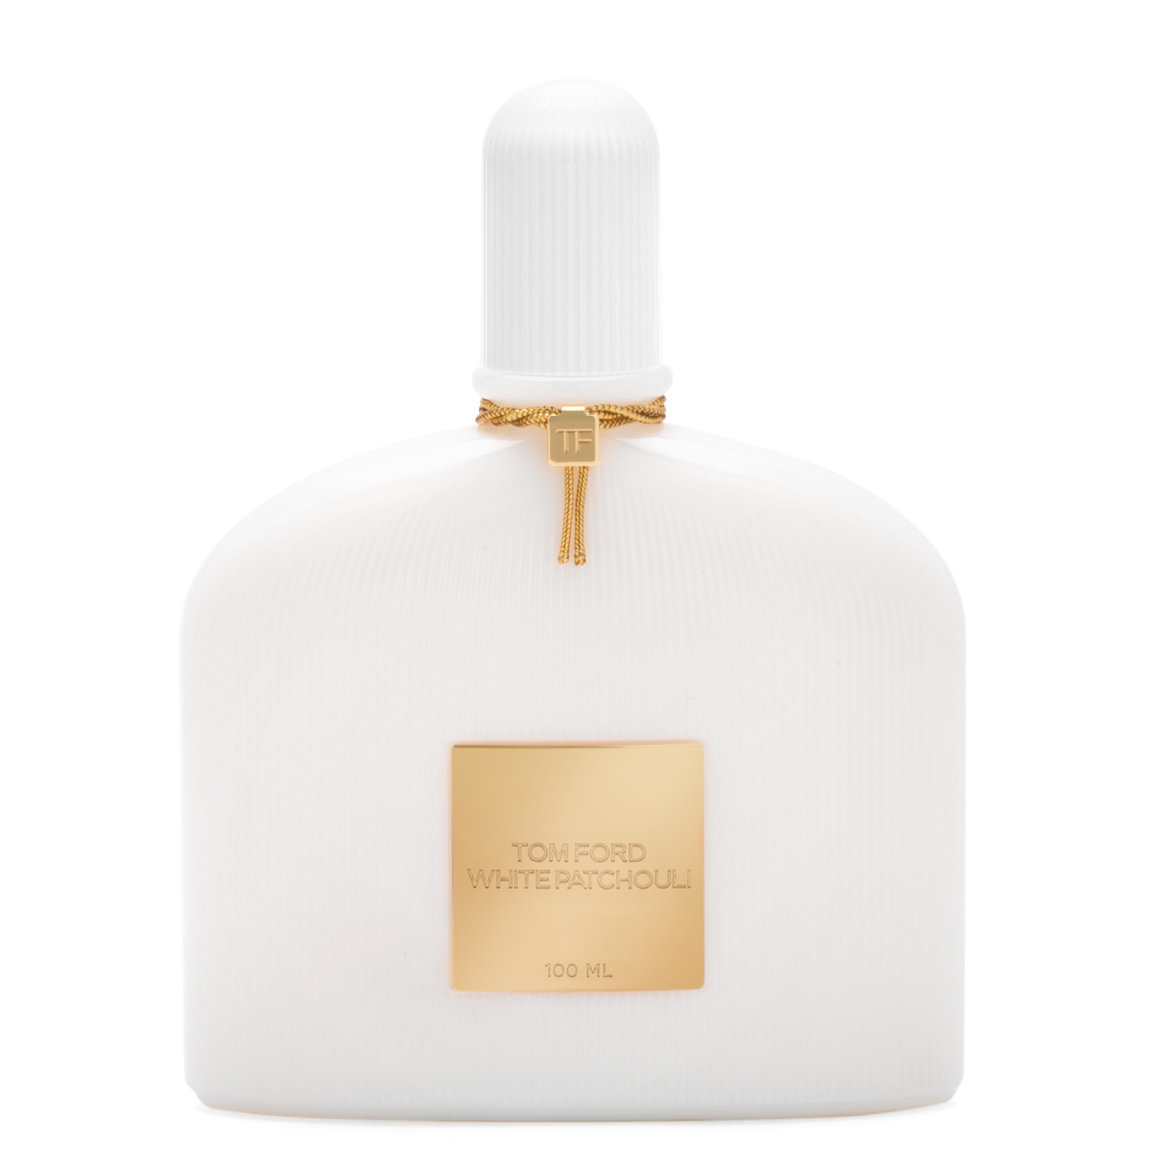 TOM FORD White Patchouli  100 ml product smear.